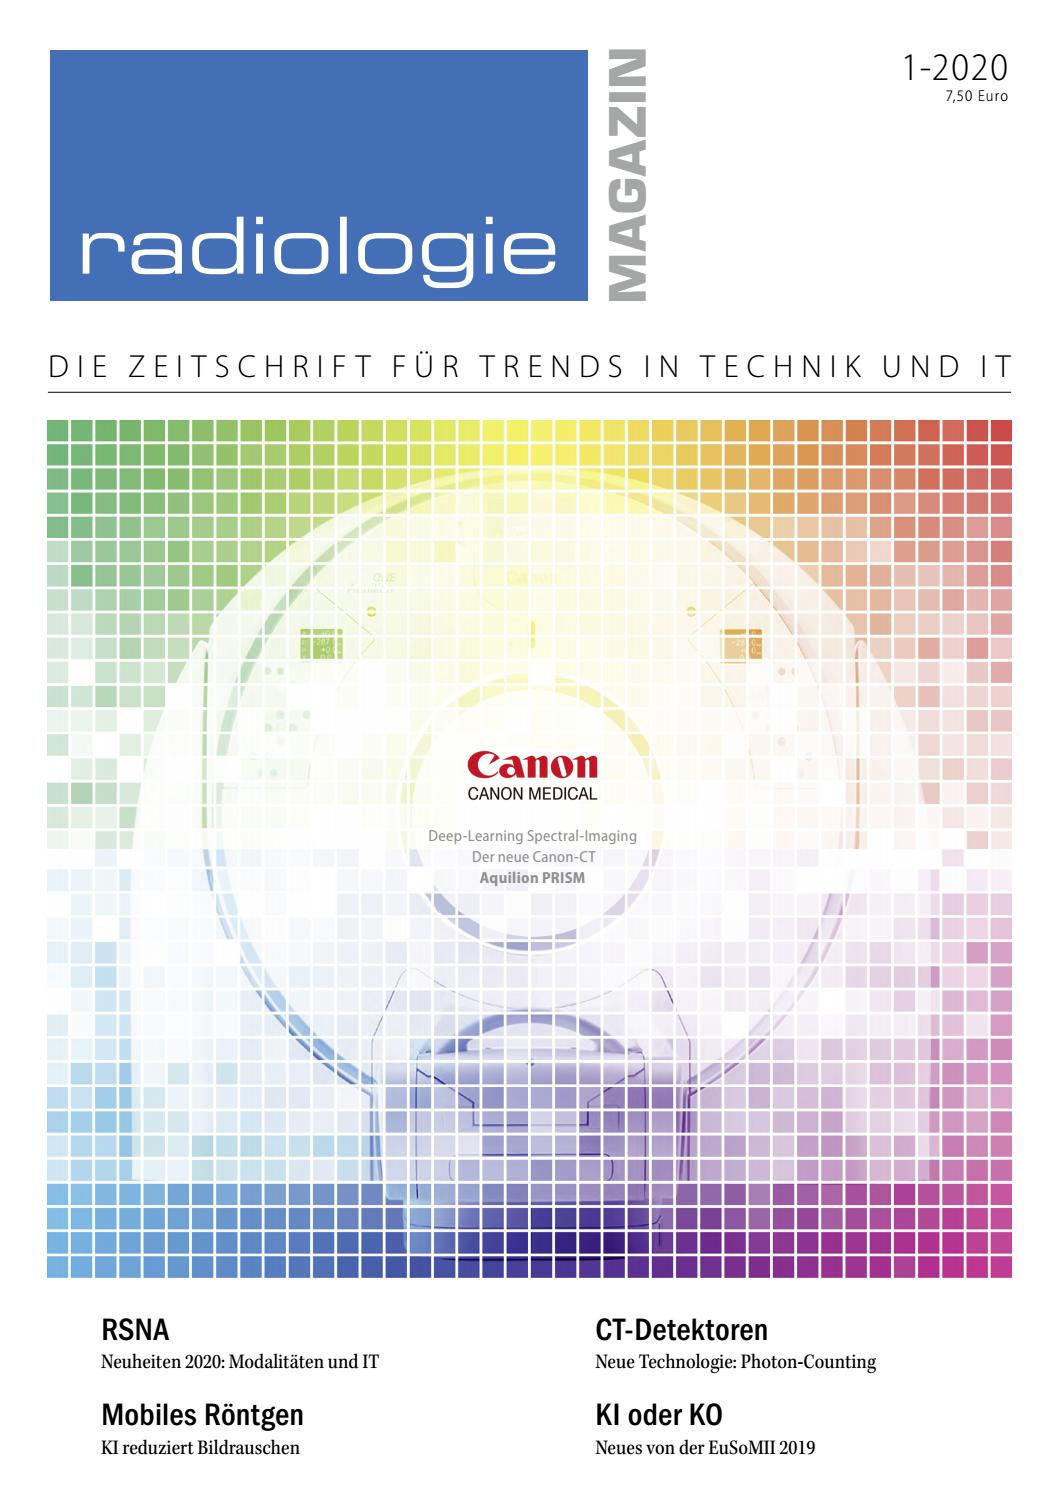 Radiologie Magazin 1 2020 By Guido Gebhardt Issuu